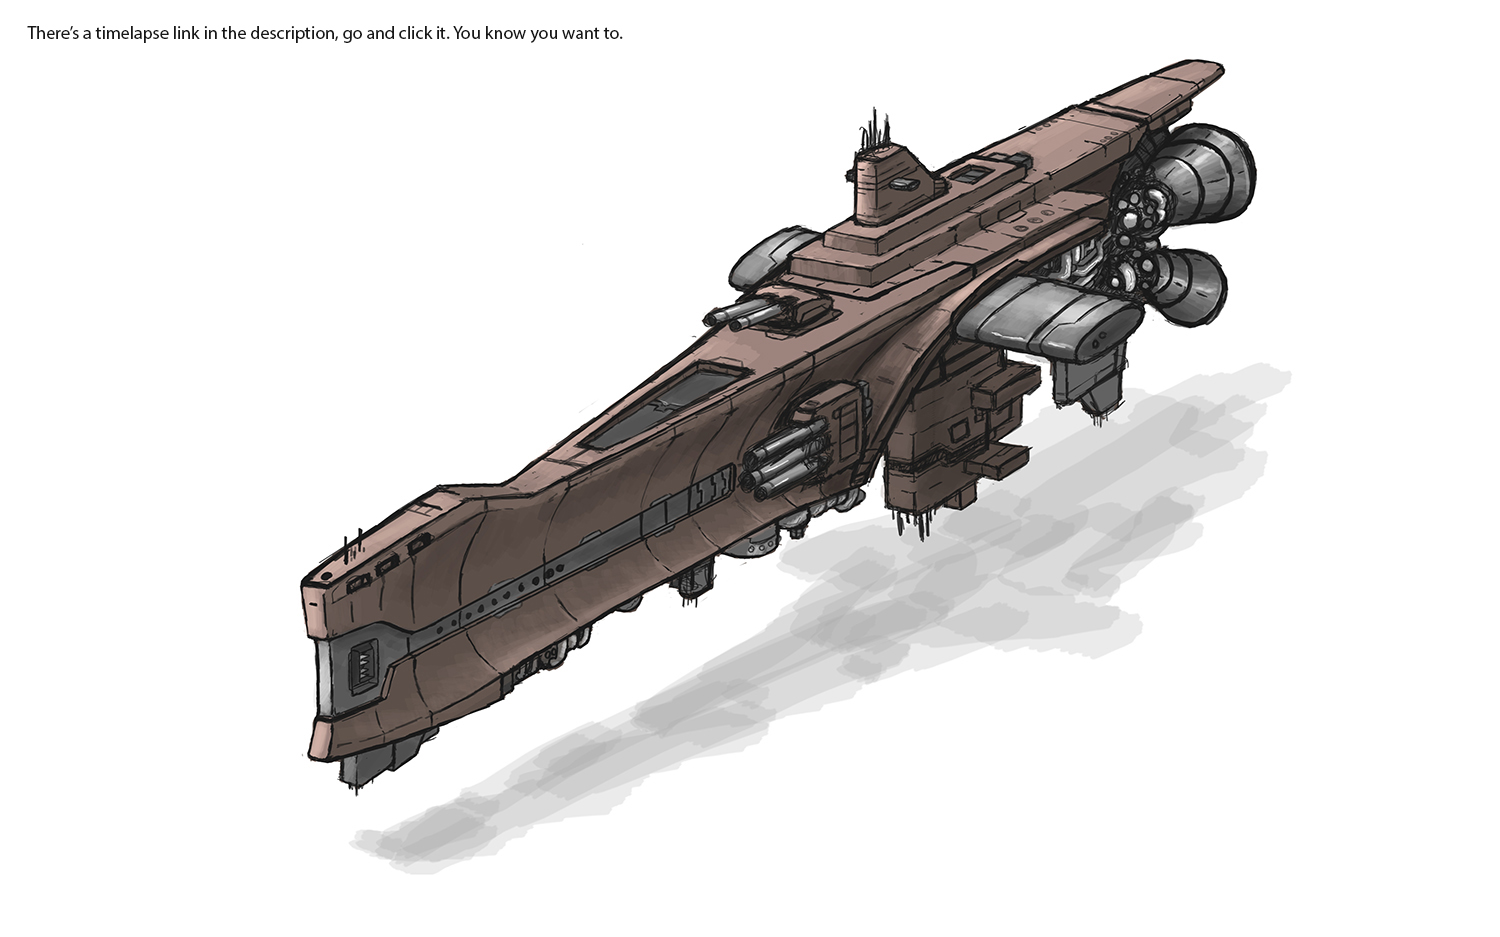 discovery drone with Diesel Space Cruiser Concept 330547833 on Red Cross Heroes Land Rover Rescue Drone besides The Navys Ship Defense Missile Just Got Deadlier together with Diesel Space Cruiser Concept 330547833 additionally American Landscape in addition Travel News Ghost Resort Puhket Thailand Abandoned Tsunami Discovered Video.